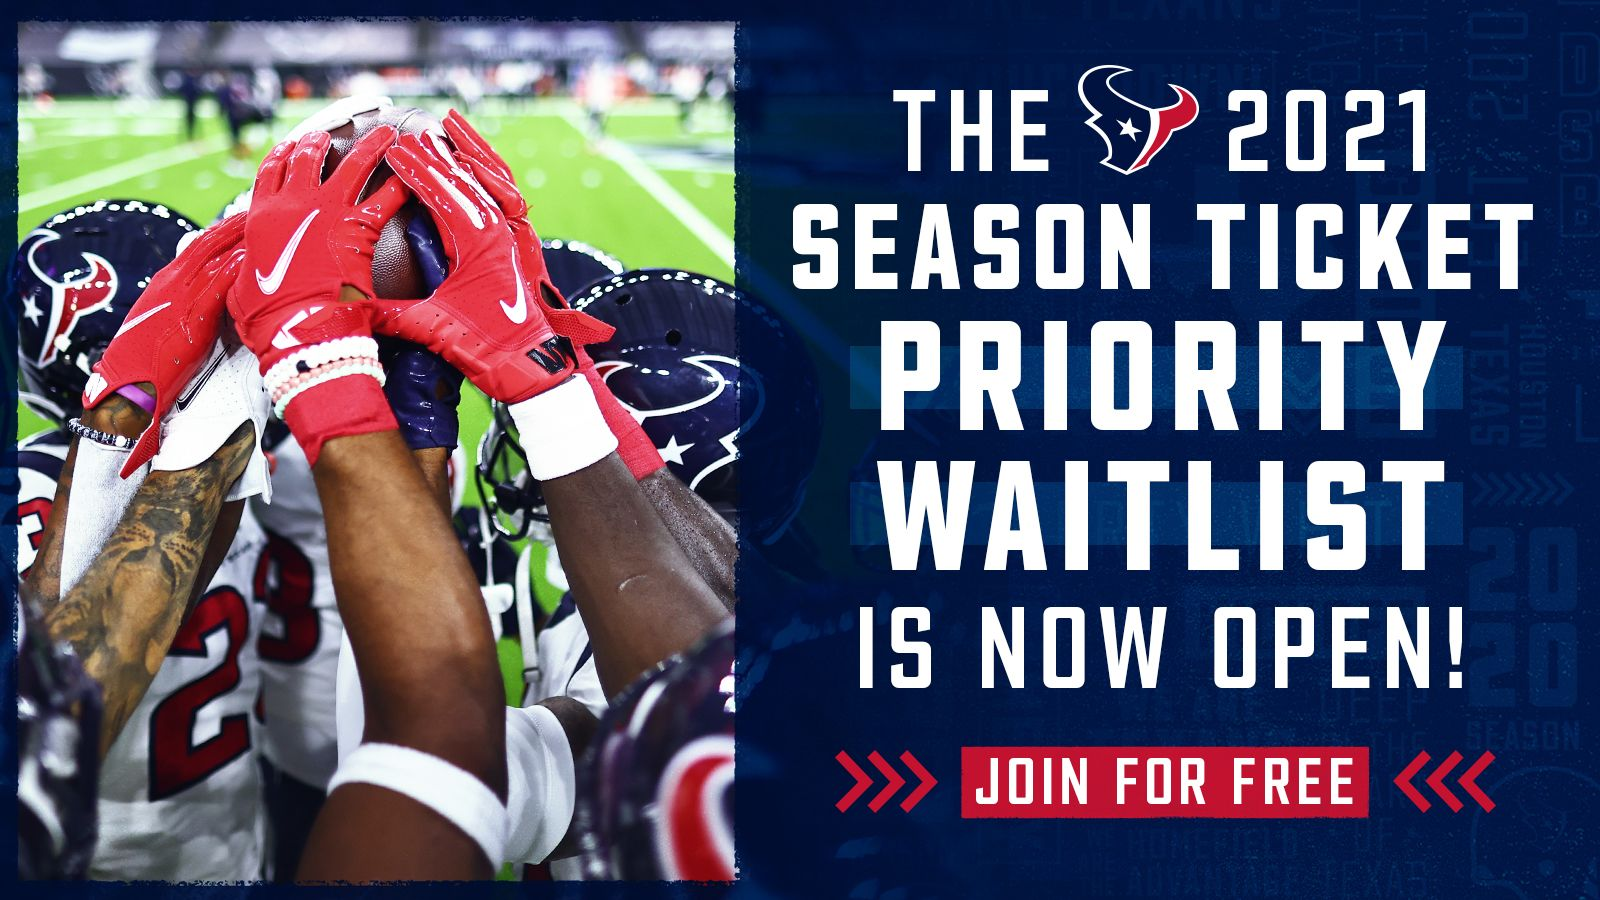 The 2021 Season Ticket Priority Waitlist is now open. Join for Free!